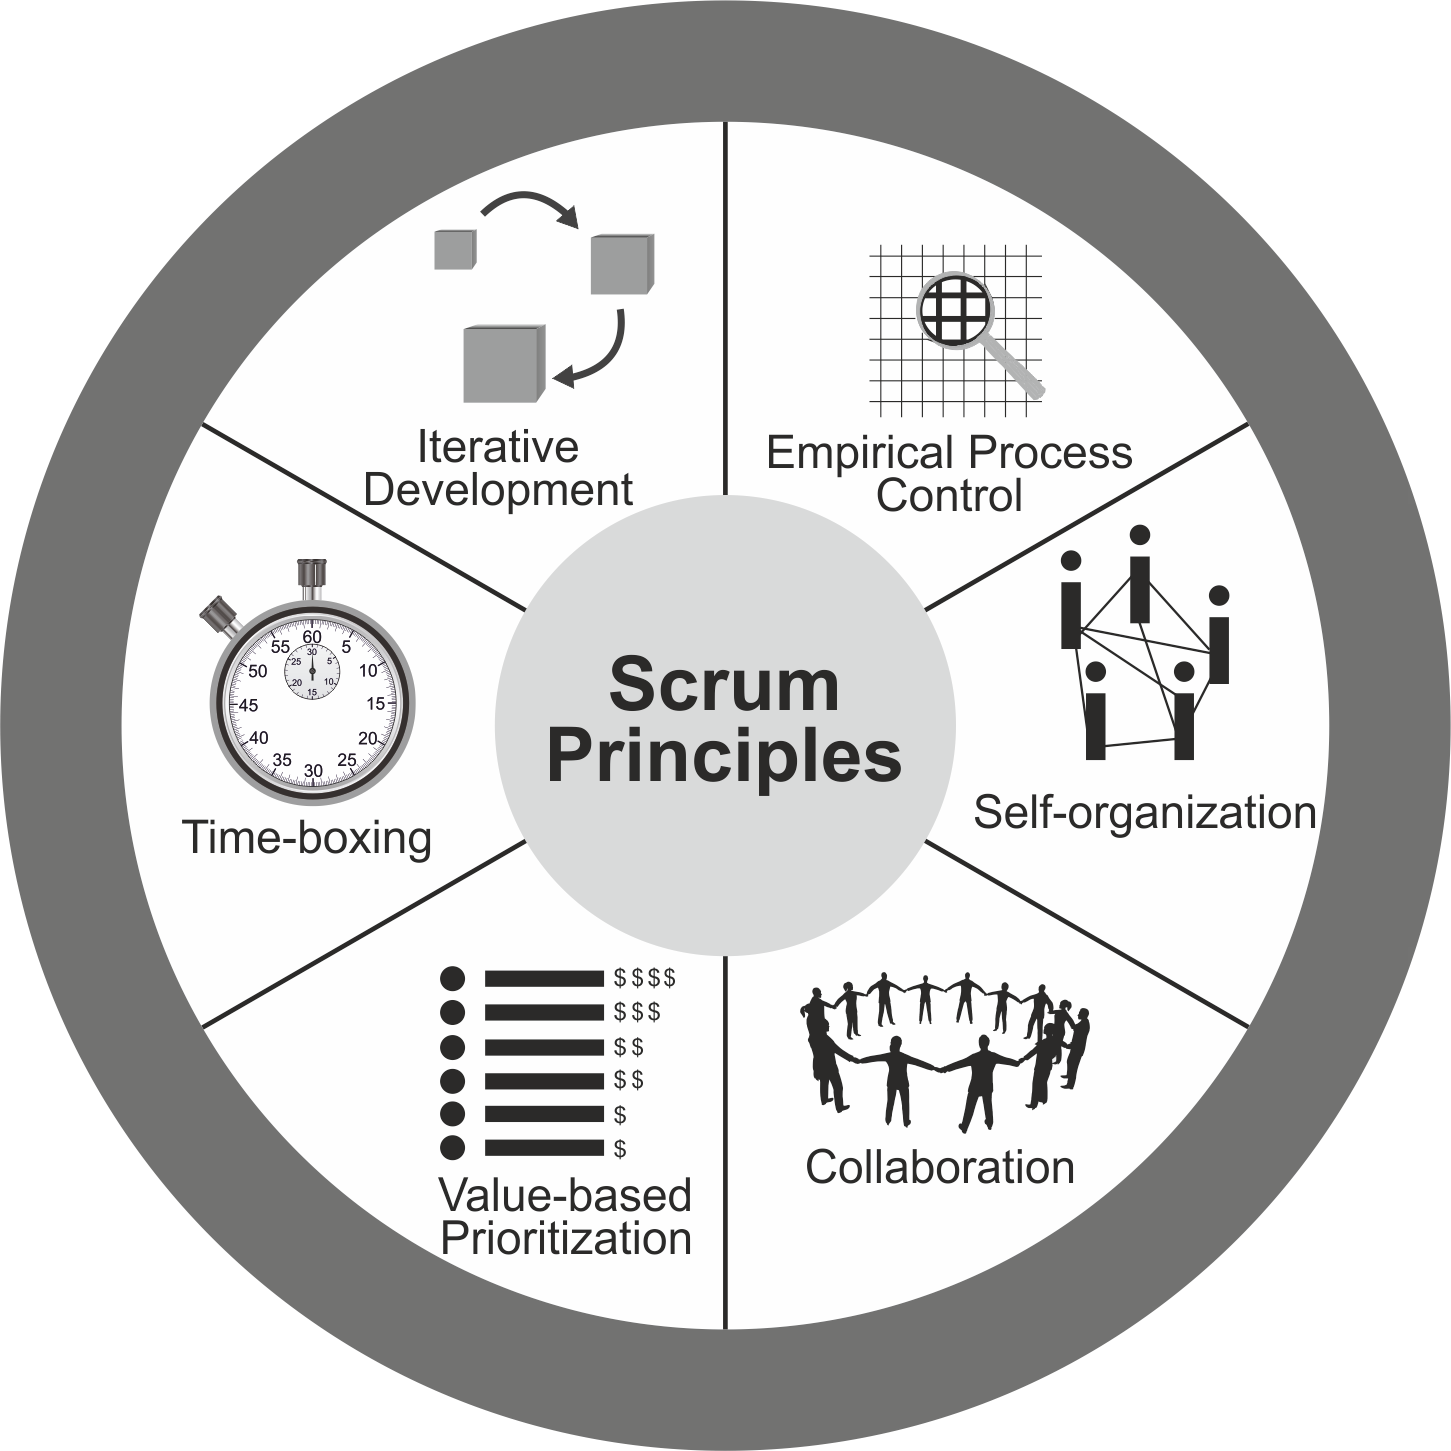 The ServiceRocket Guide to Better Agile Course Development Using Scrum